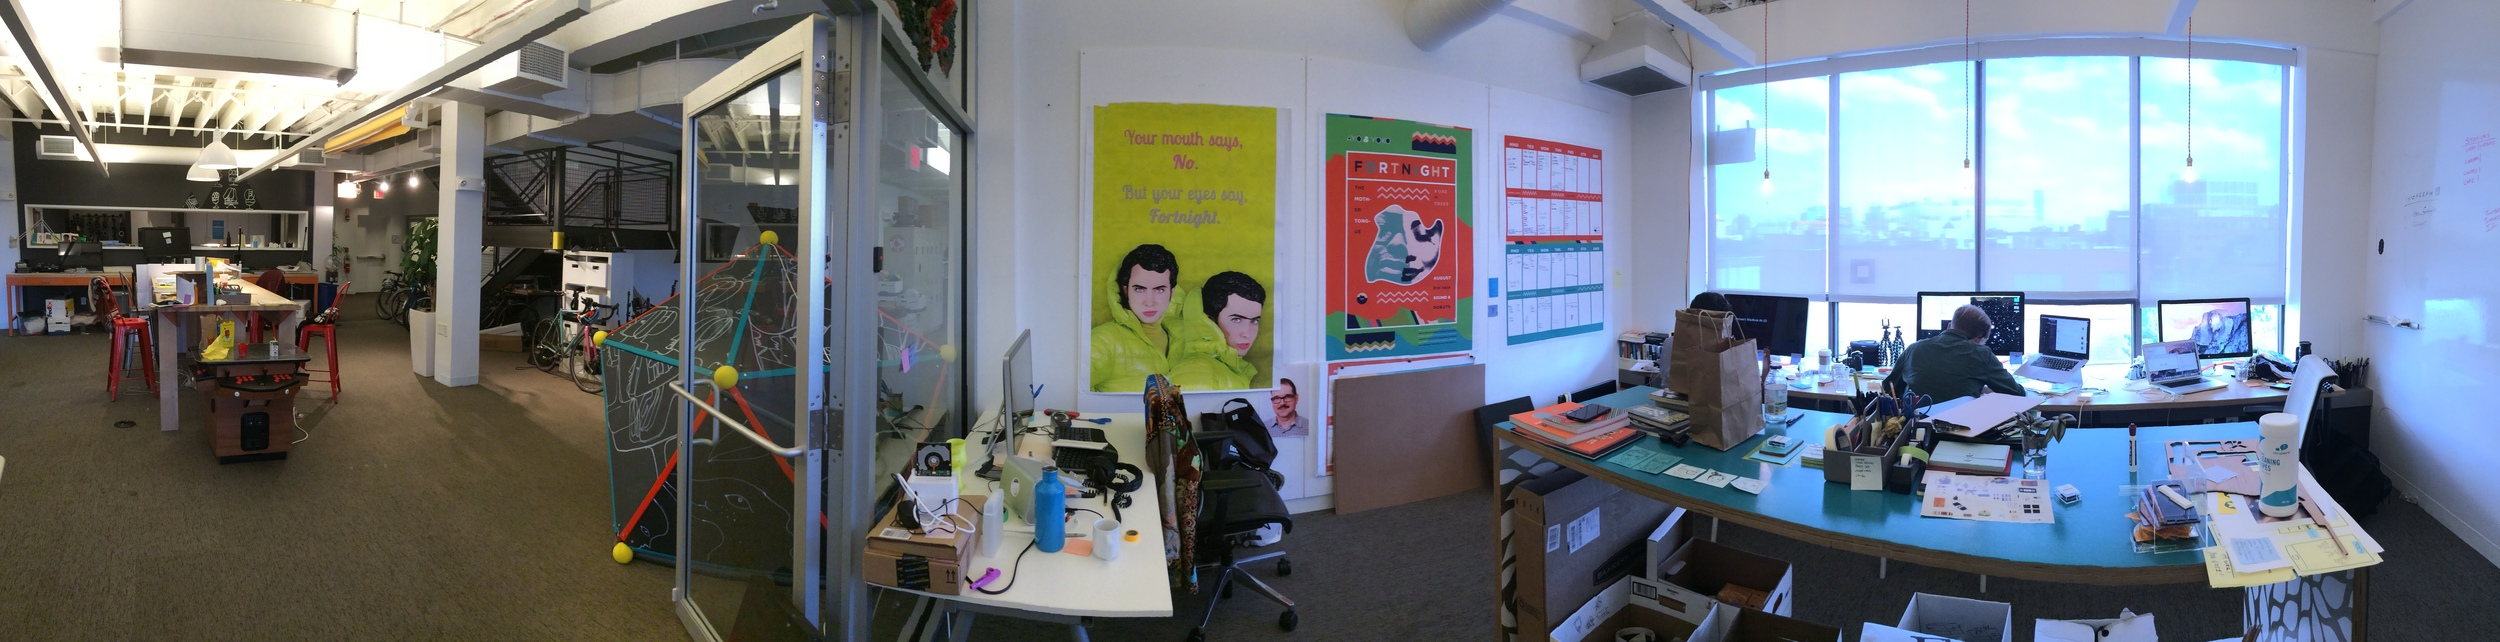 My Work Area + the Common maker space